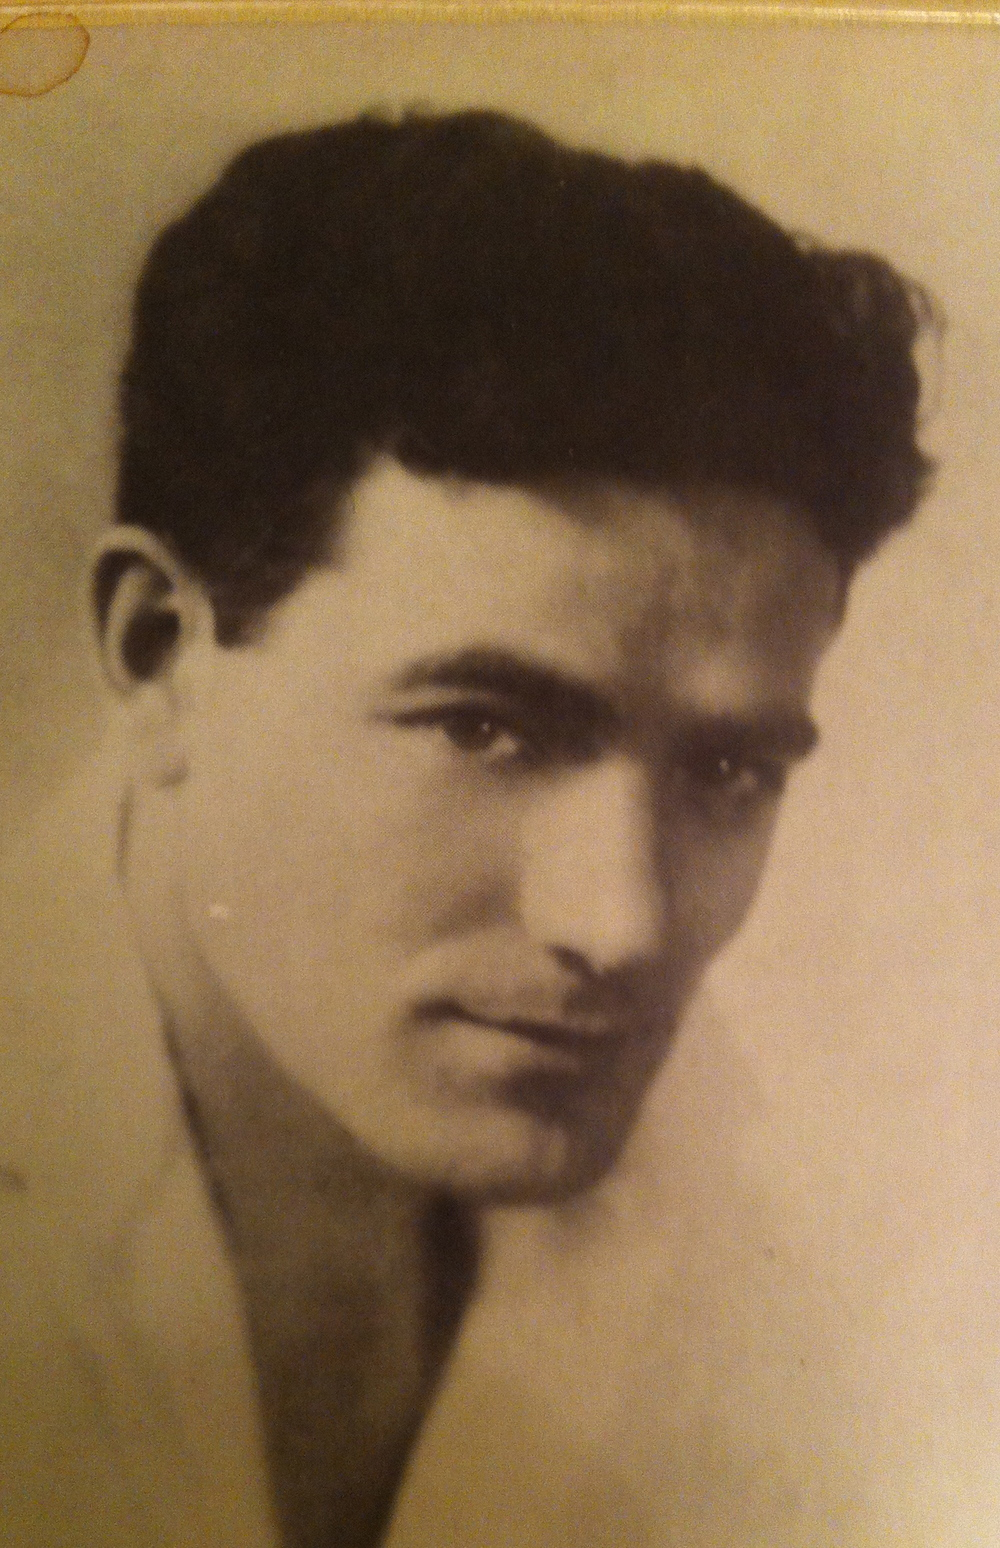 Photo of Louis L'Amour c. 1939